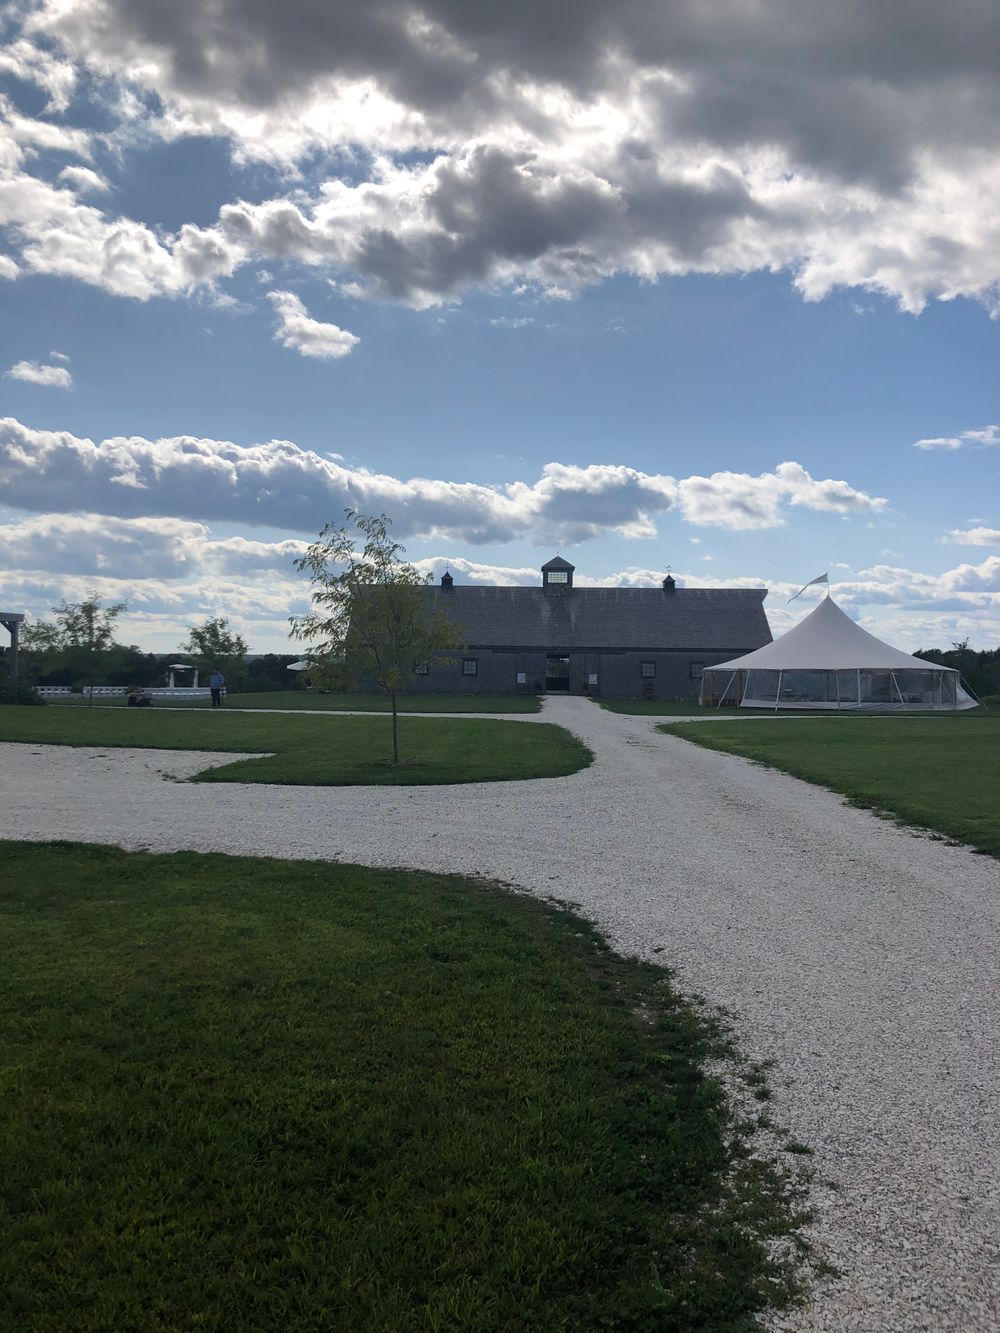 Looking west from the main road, at the Weatherlow barn set up with a ceremony on the south lawn and a cocktail tent on the north lawn, in September.